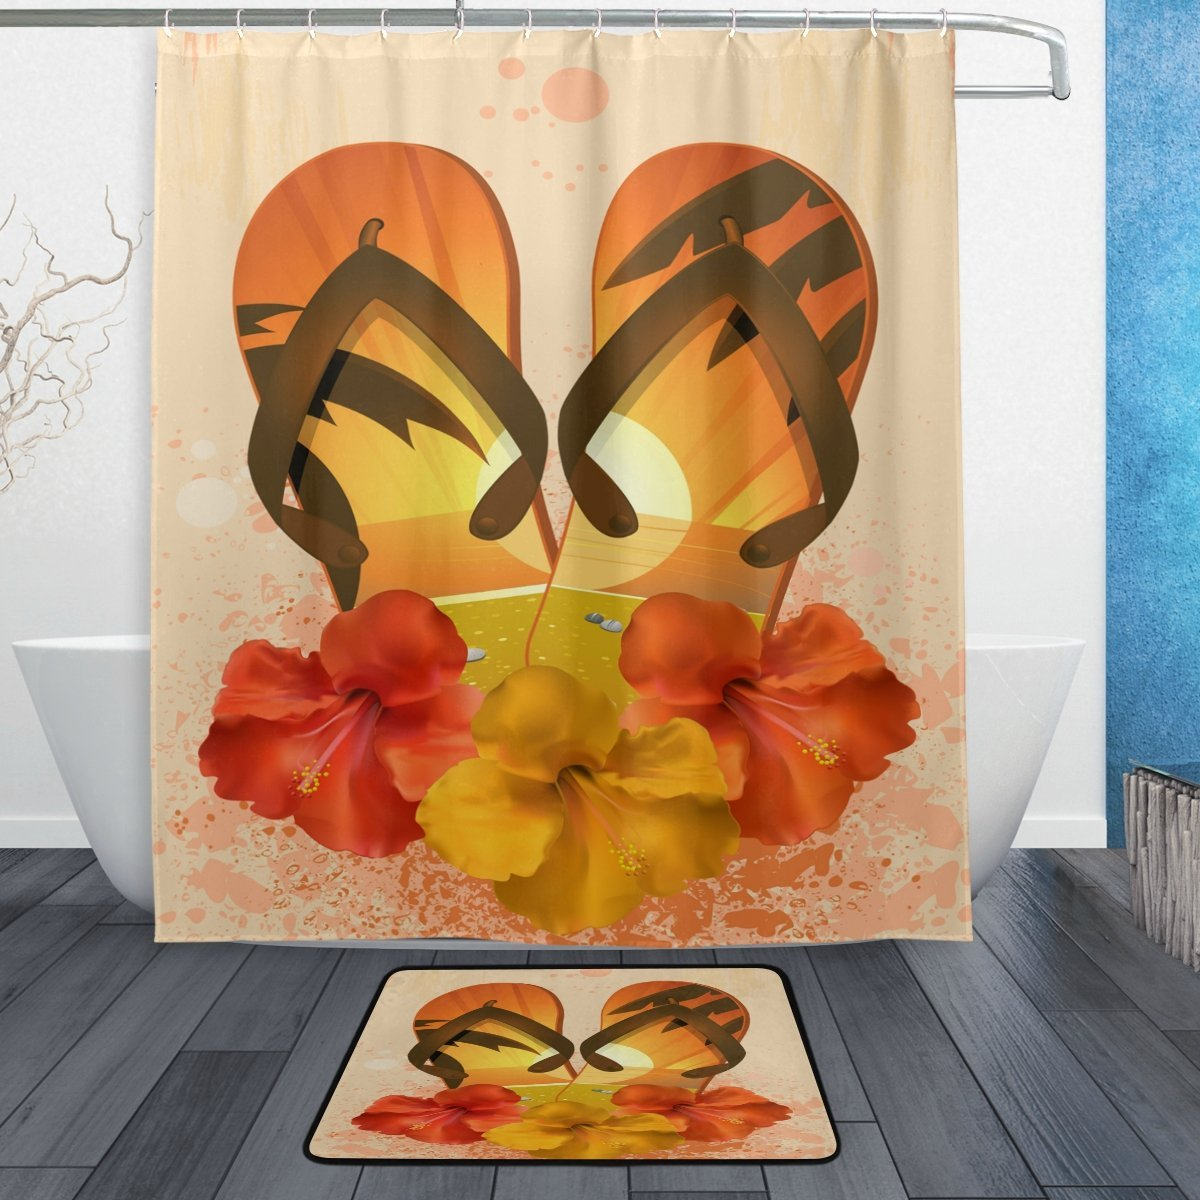 Tropical Hibiscus Flower Flip Flops Waterproof Polyester Fabric Shower Curtain with Hooks Doormat Bath Floor Mat Bathroom